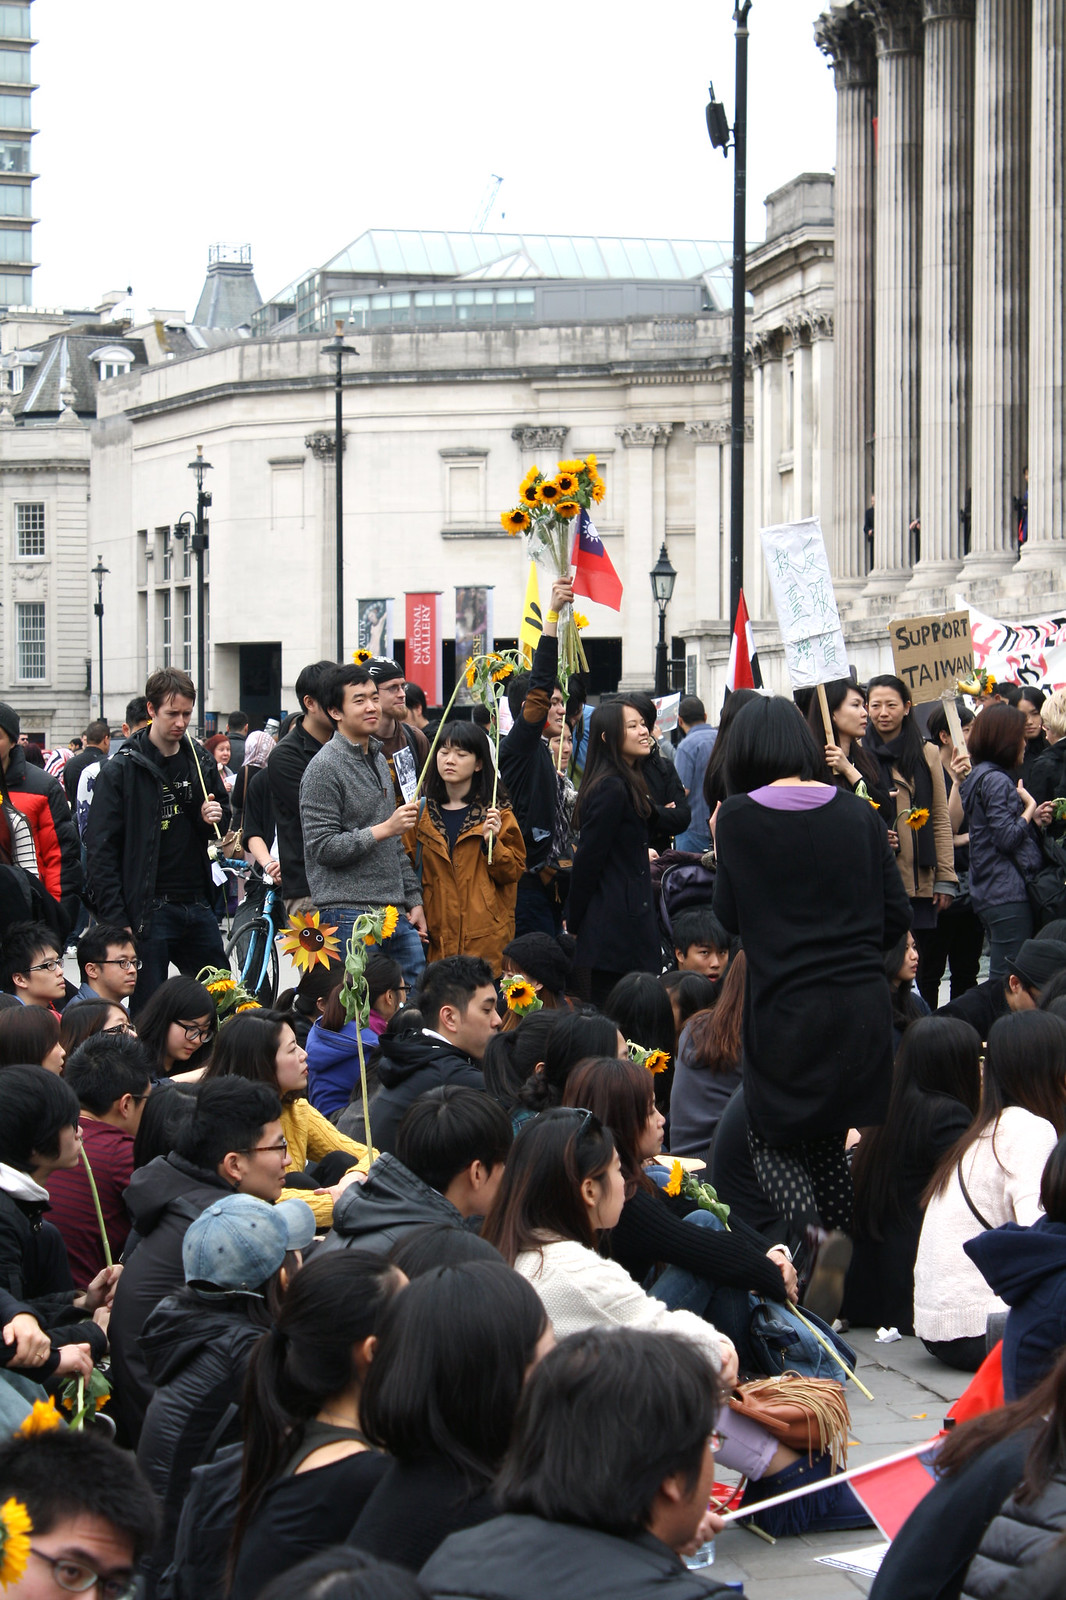 sunflower protest - the london project